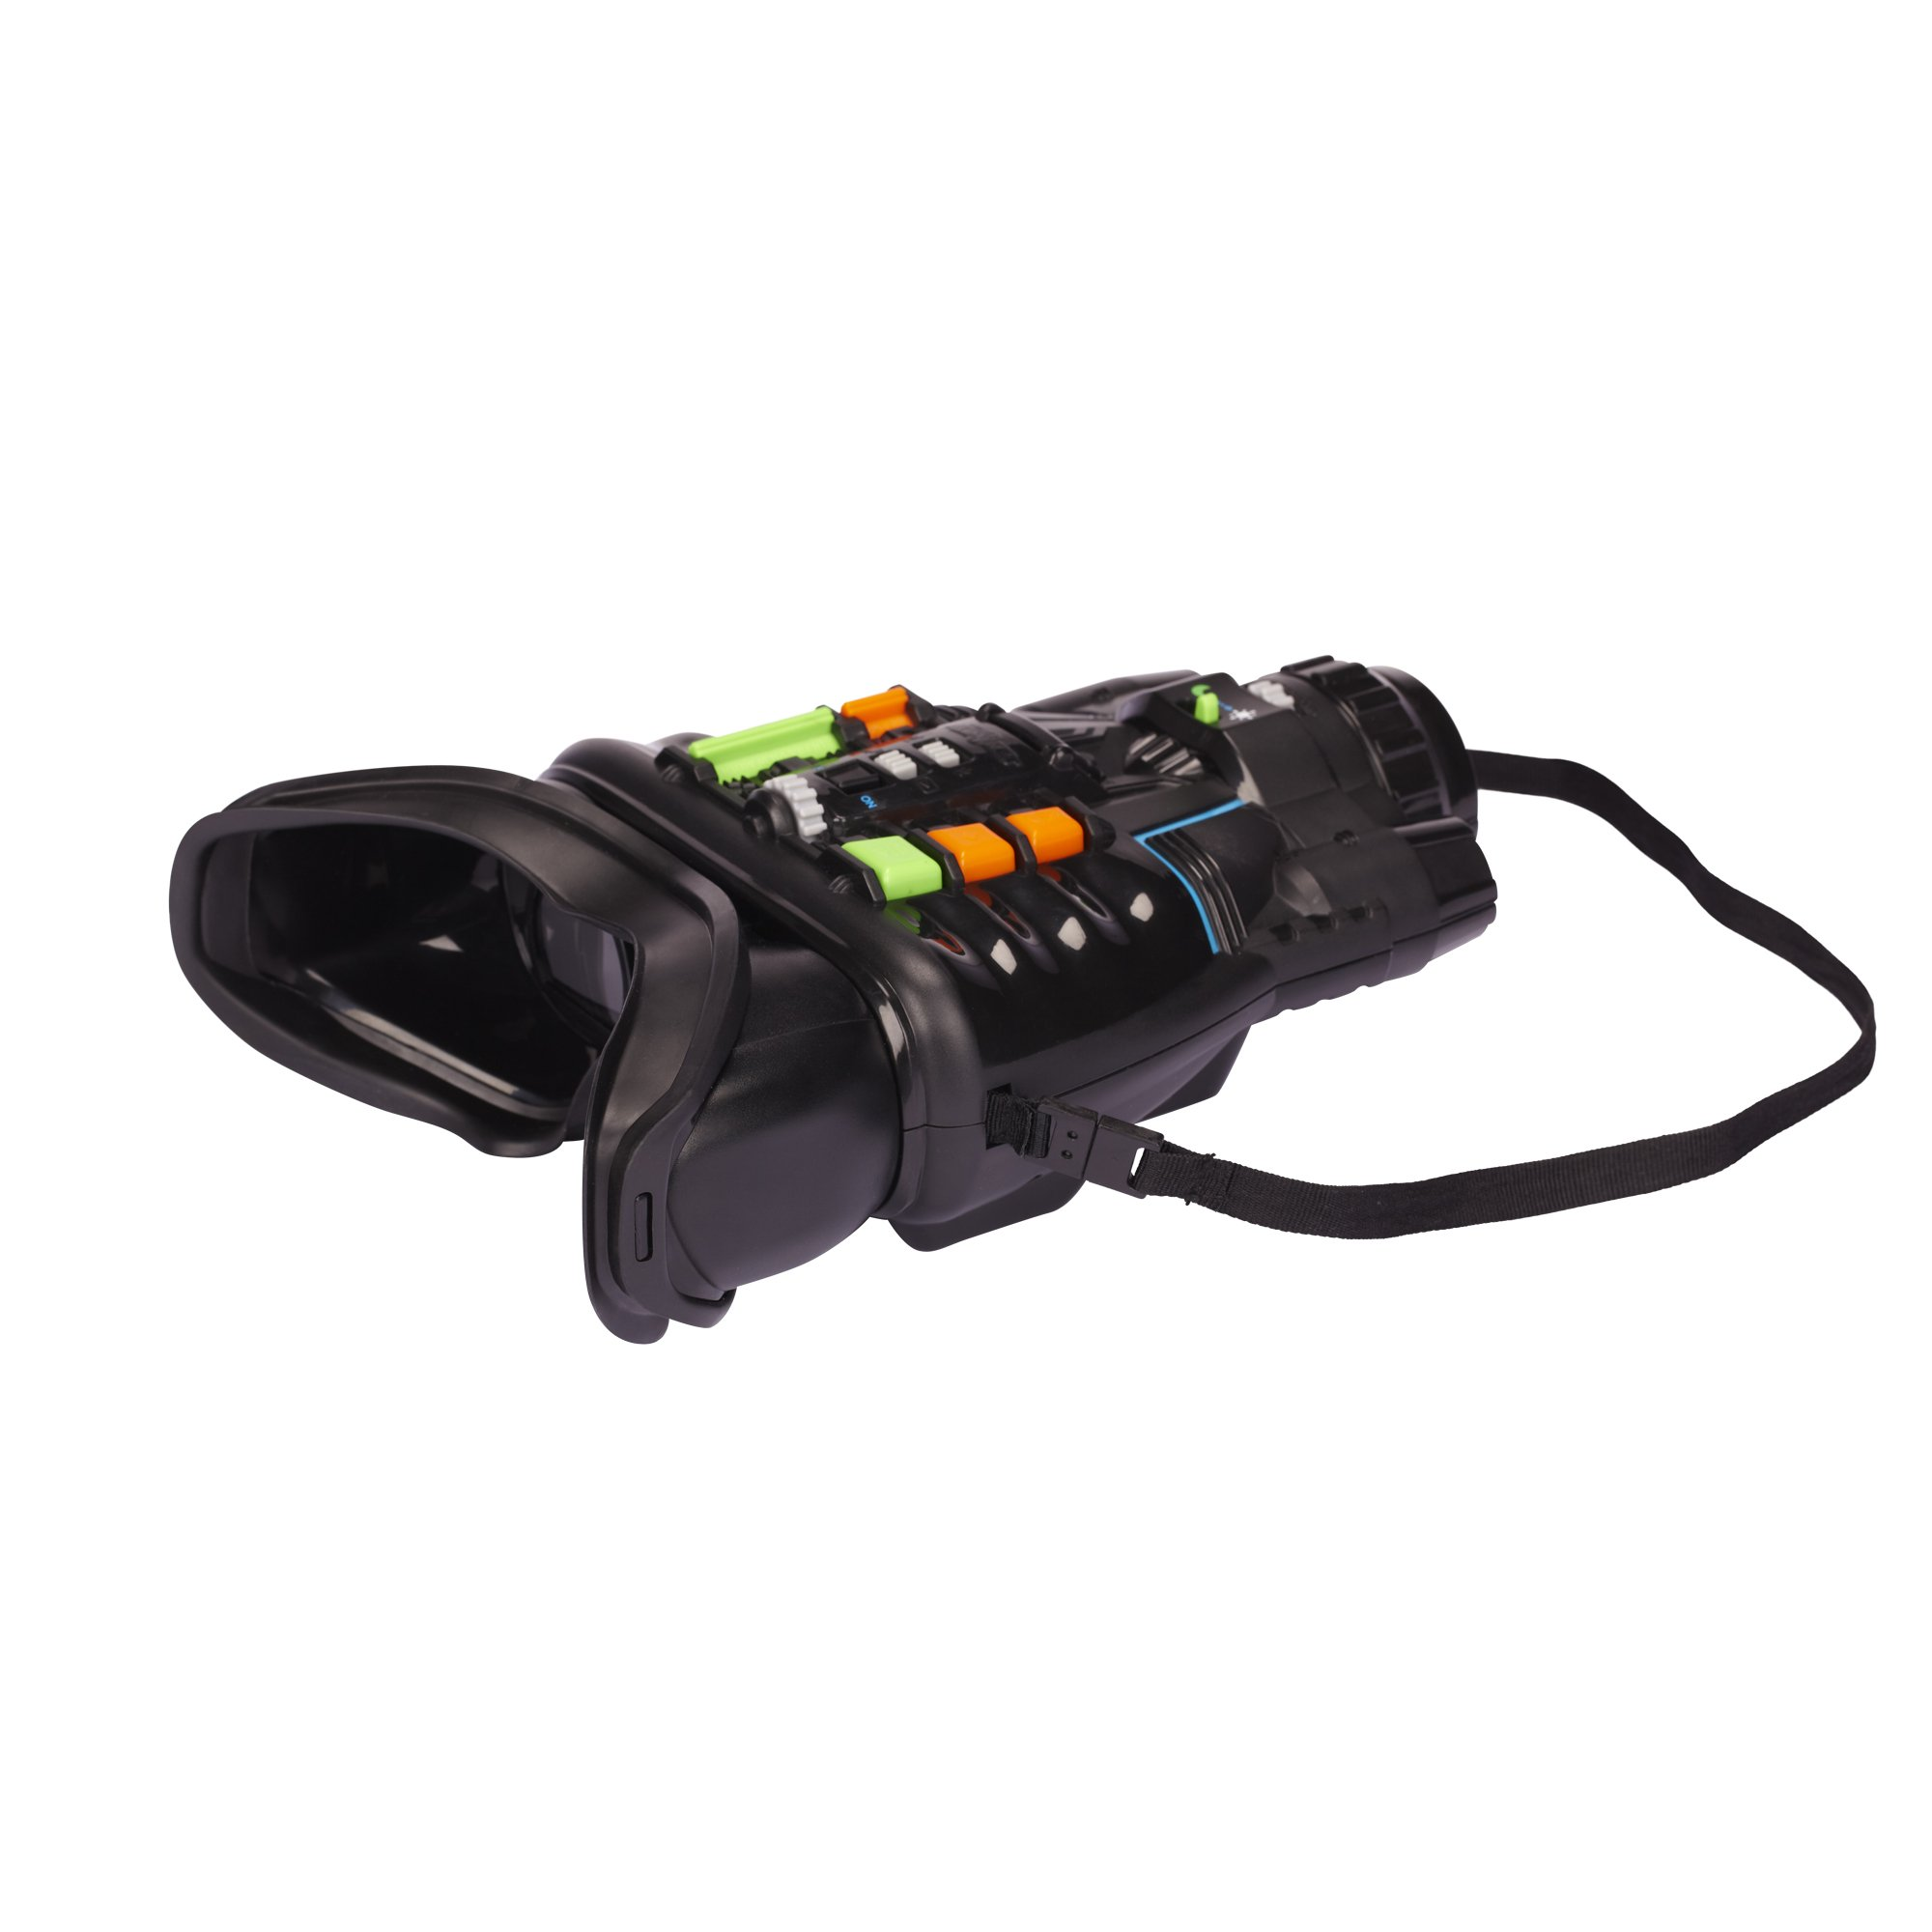 SpyNet Ultra Vision Goggles with 5 Vision Modes by Jakks Pacific by SpyNet (Image #3)